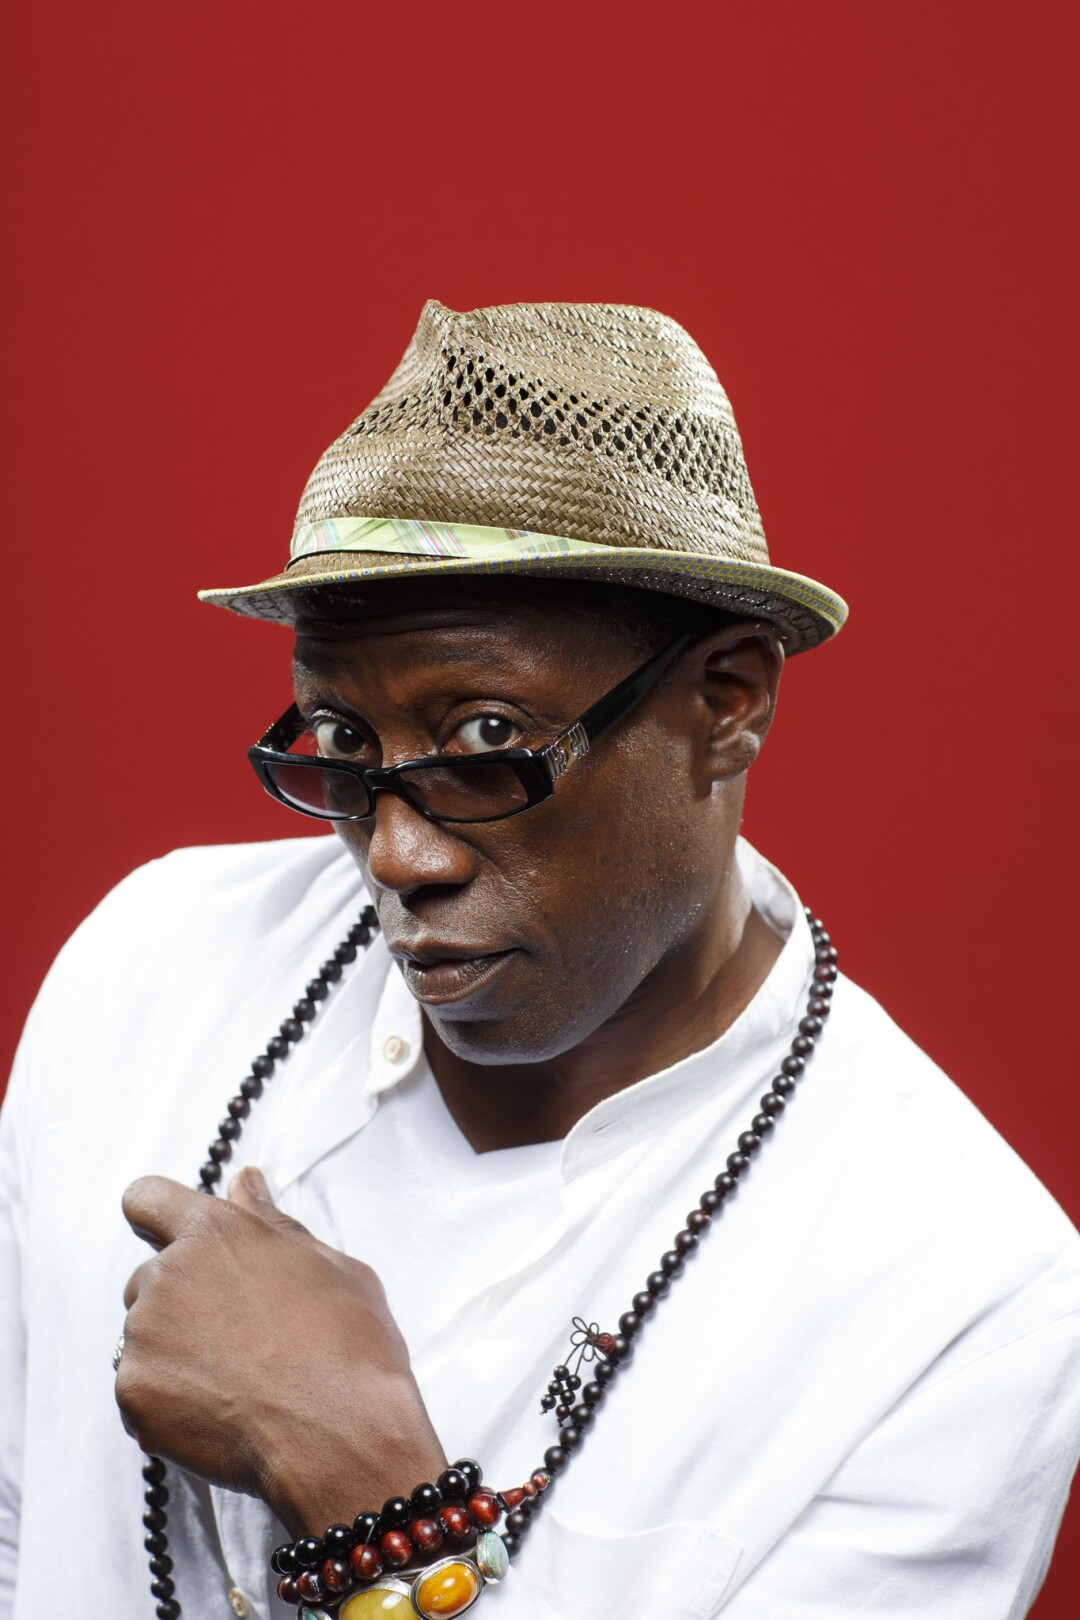 """Wesley Snipes from the film """"Cut Throat City,"""" photographed in the L.A. Times Photo and Video Studio at Comic-Con 2018."""